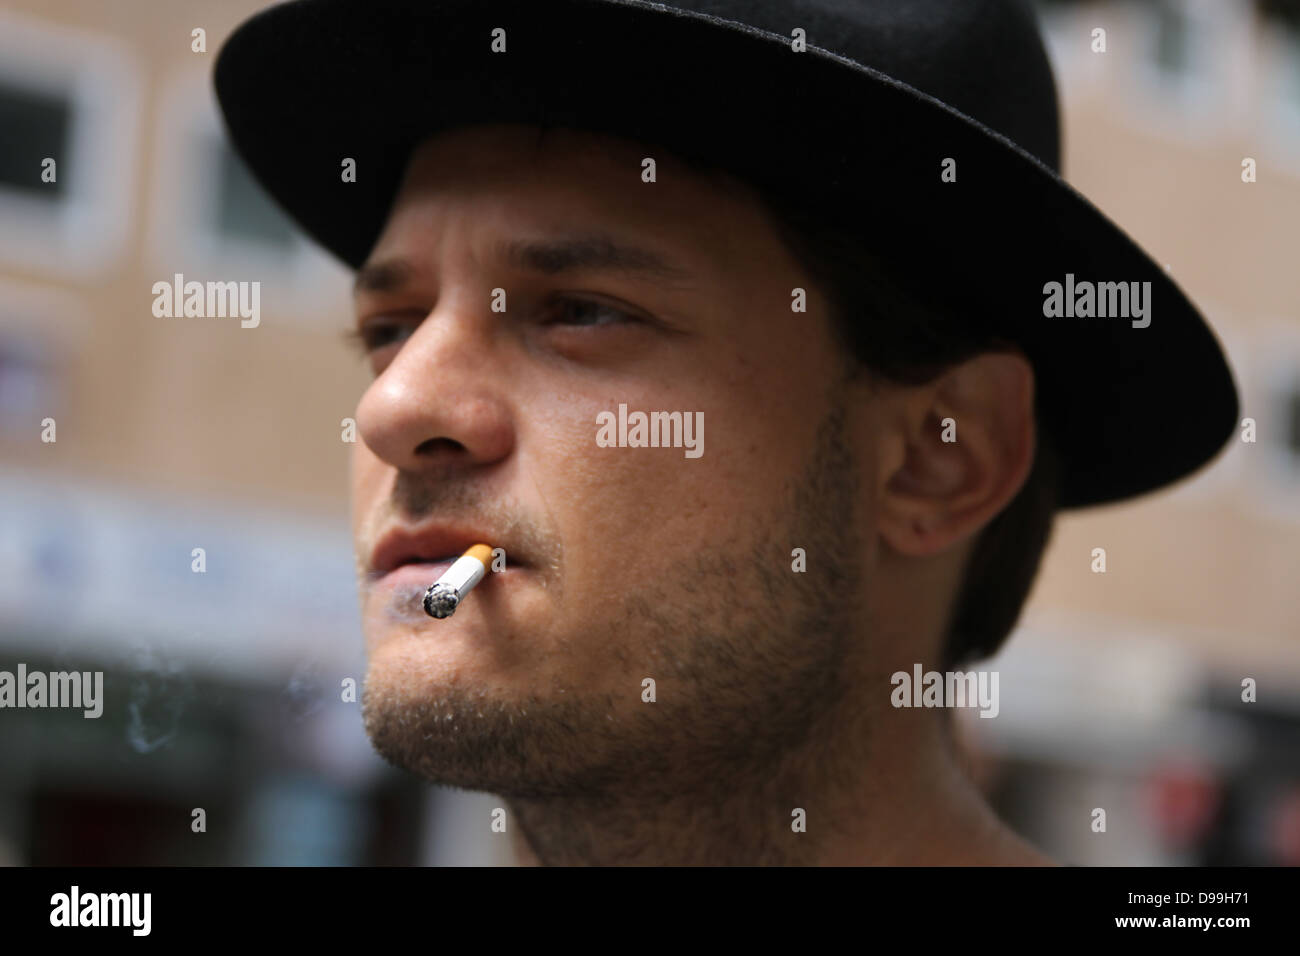 Man in hat smoking a cigarette - Stock Image